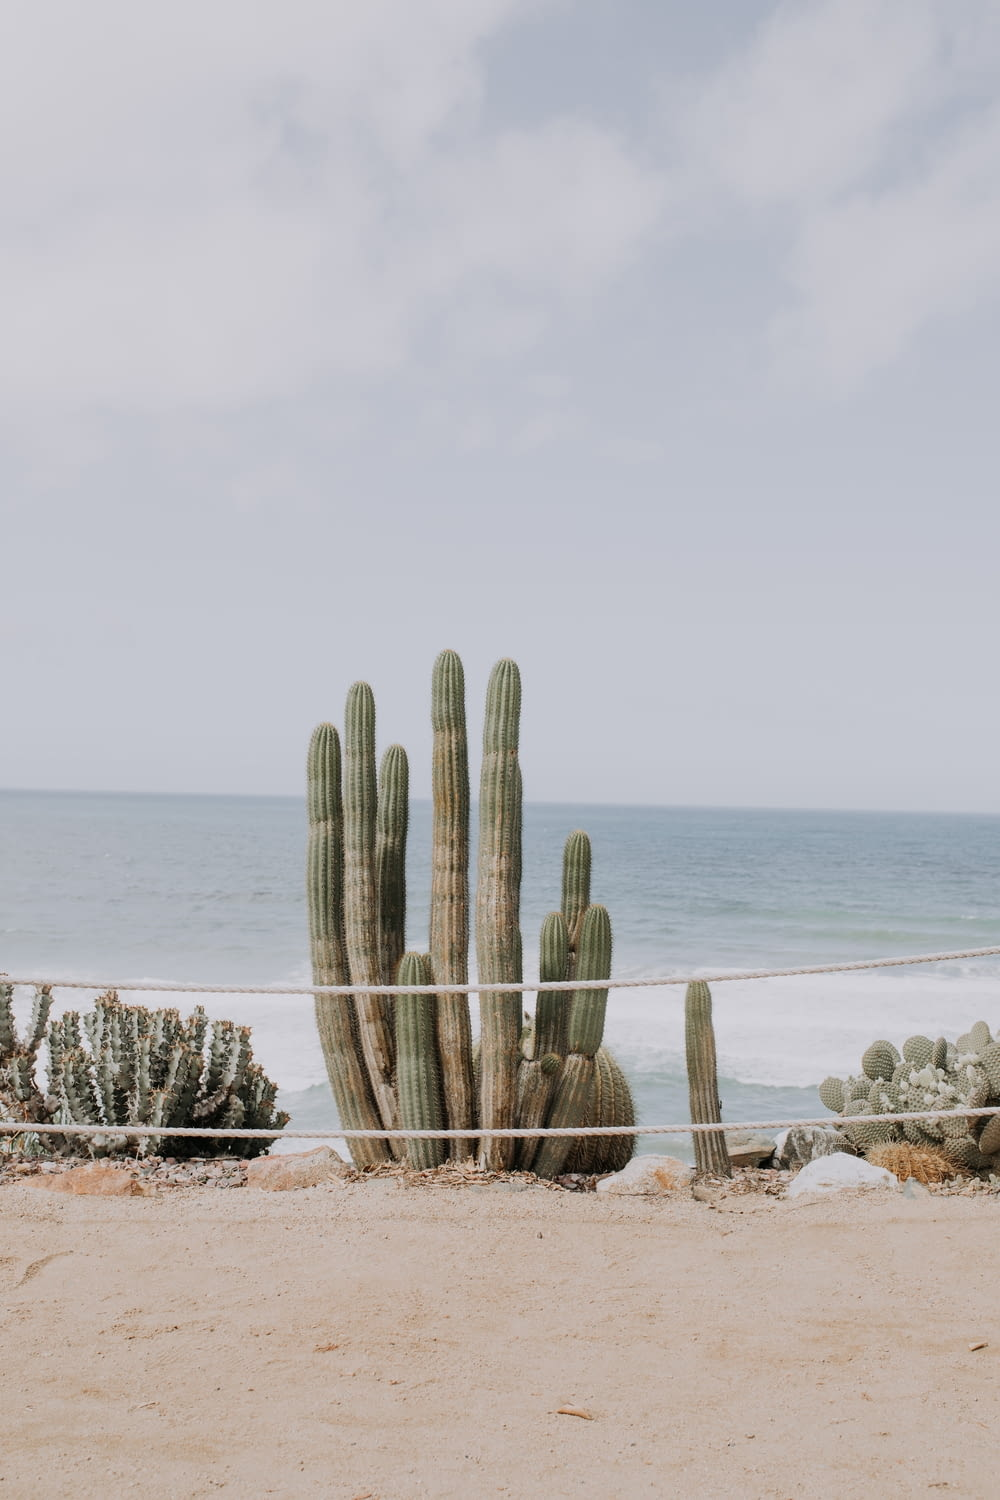 cactus on shore under cloudy sky